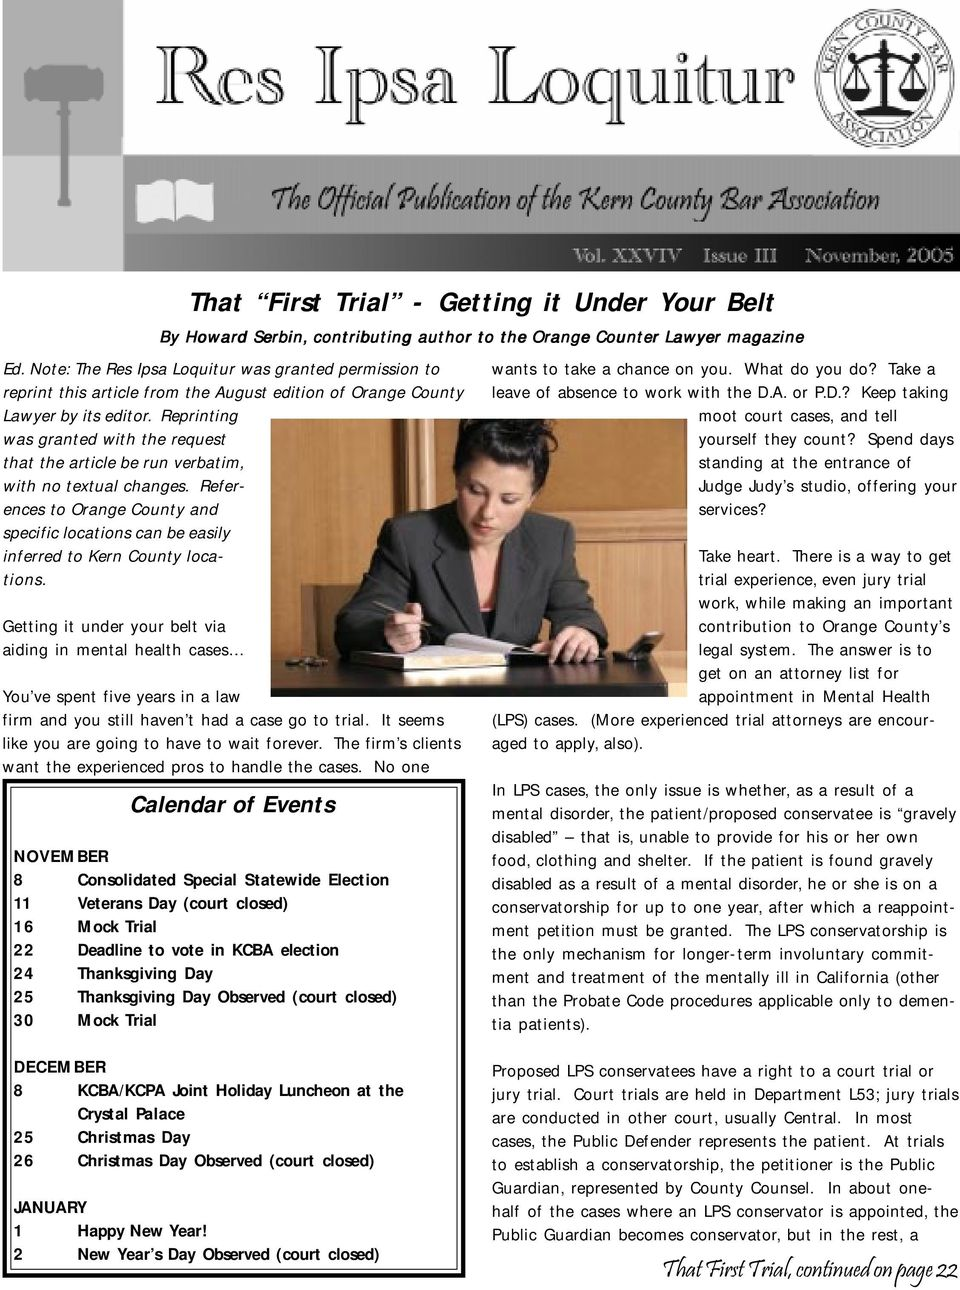 Getting it under your belt via aiding in mental health cases That First Trial - Getting it Under Your Belt By Howard Serbin, contributing author to the Orange Counter Lawyer magazine You ve spent